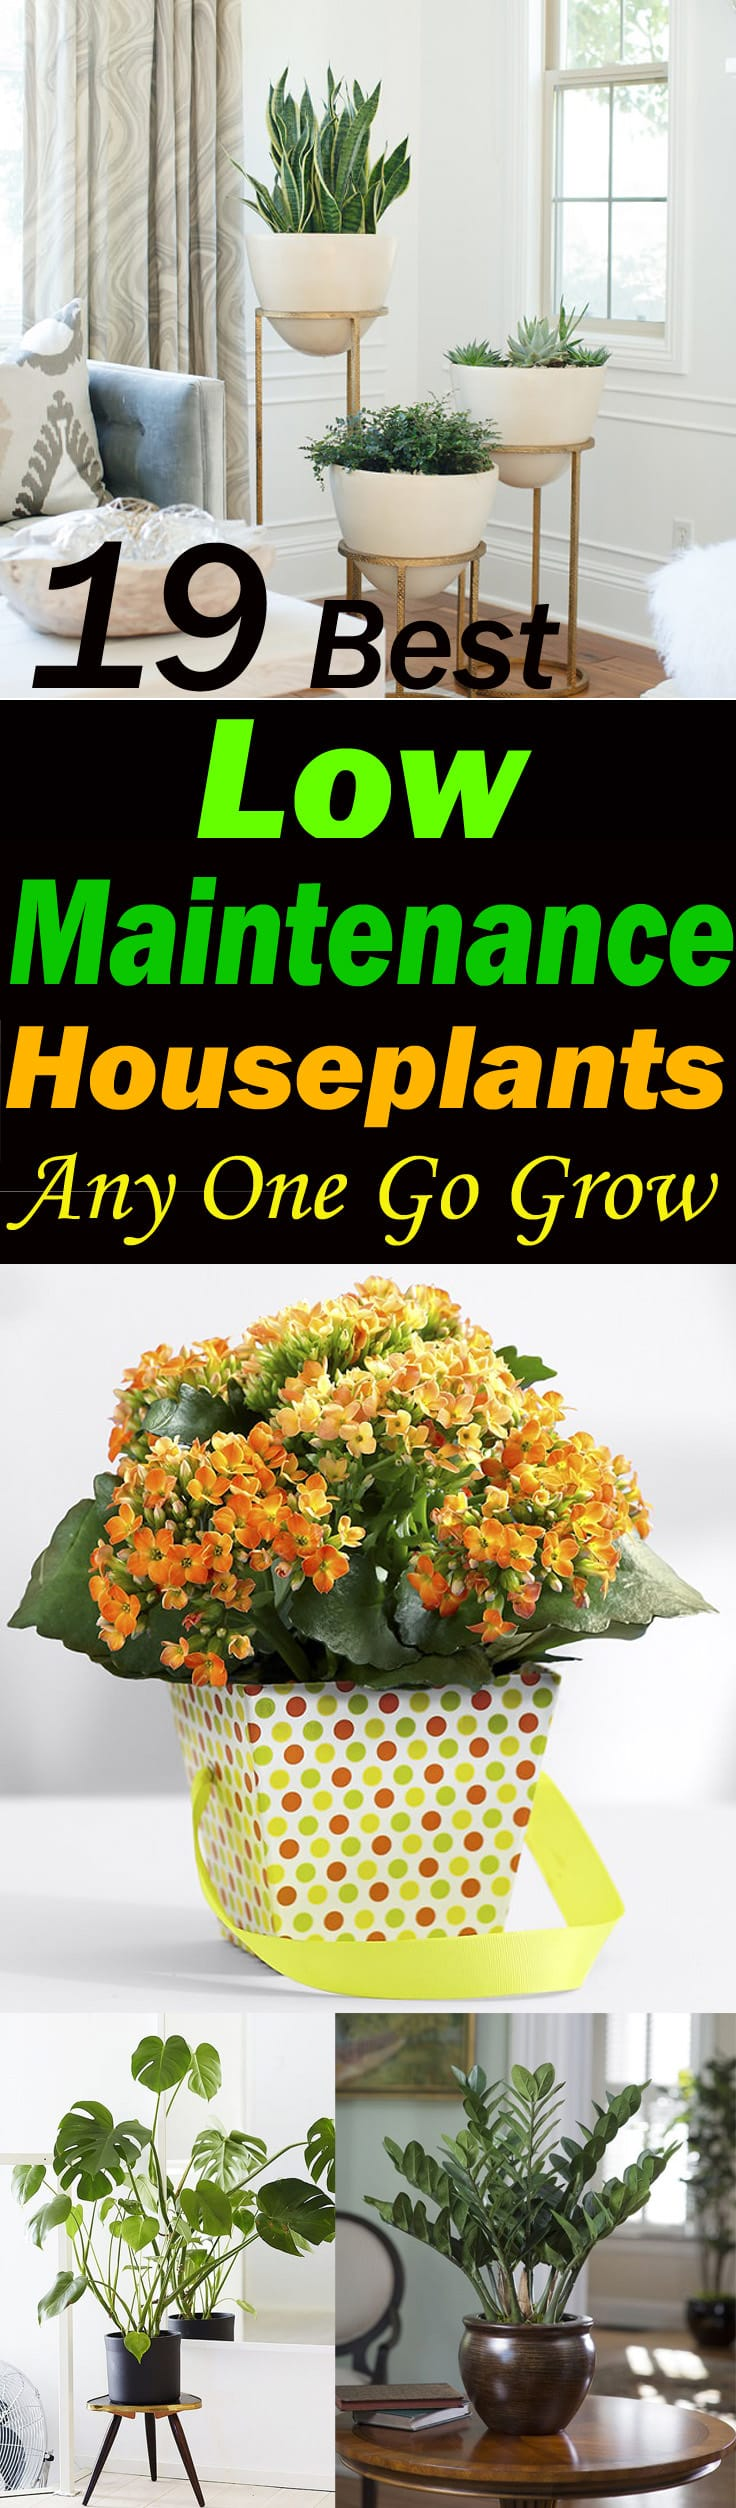 19 Best Low Maintenance Houseplants Balcony Garden Web